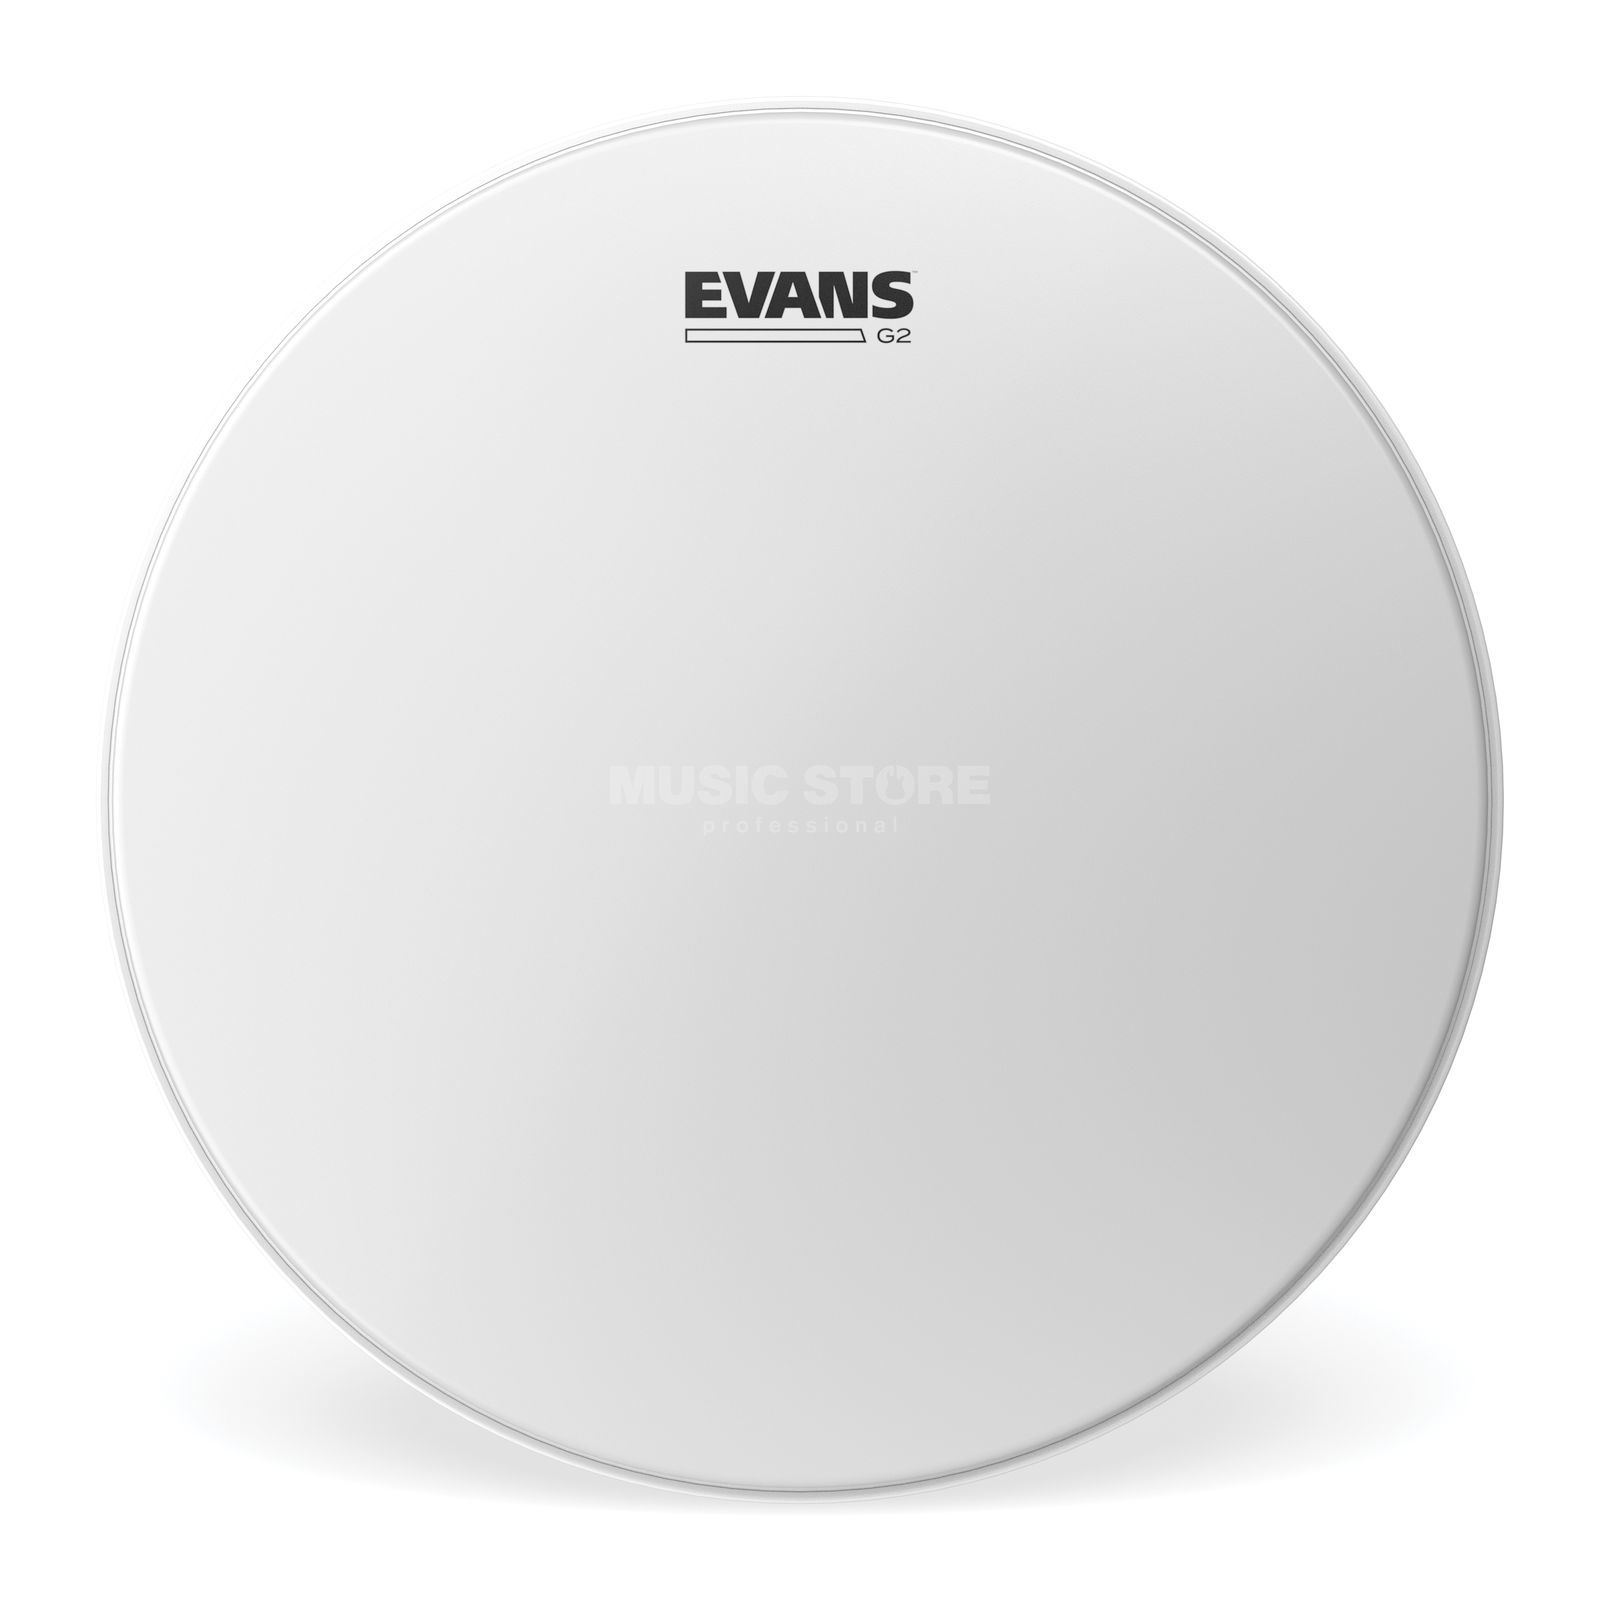 "Evans G2 Coated 12"", B12G2, Tom Batter Produktbild"